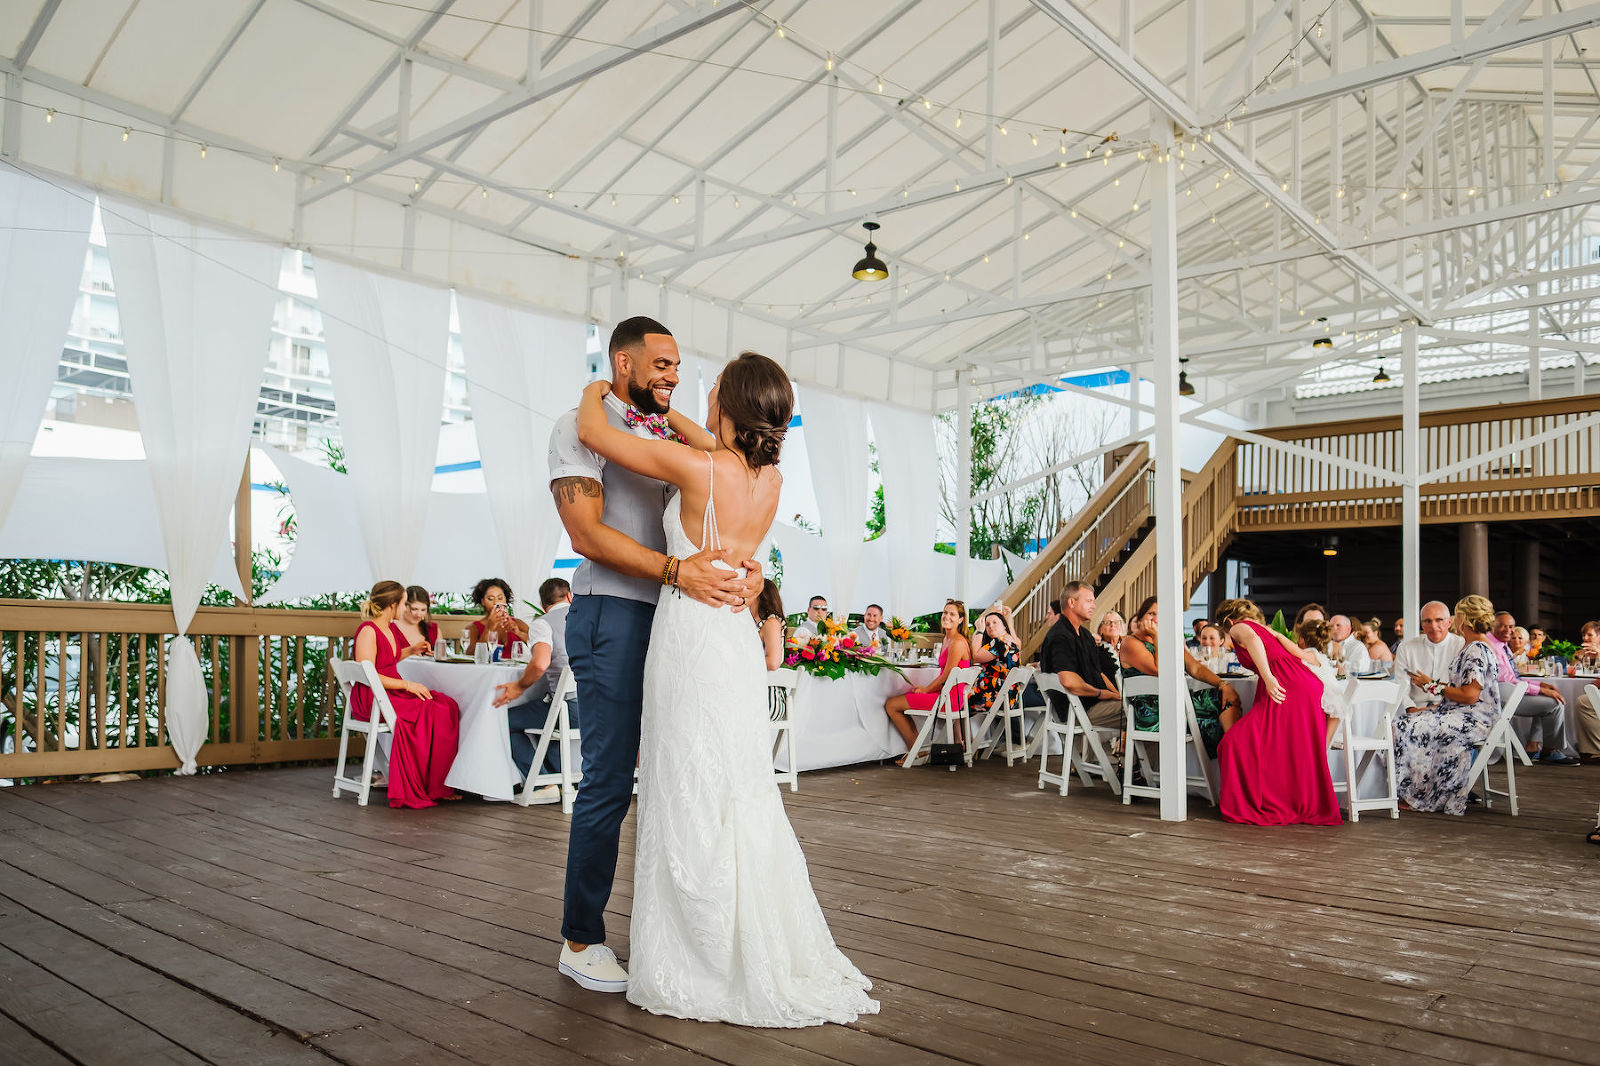 Tropical Florida Bride and Groom First Dance Wedding Reception Portrait | Waterfront Hotel Wedding Venue Hilton Clearwater Beach Resort and Spa | Tampa Bay Wedding DJ and Entertainment Grant Hemond and Associates